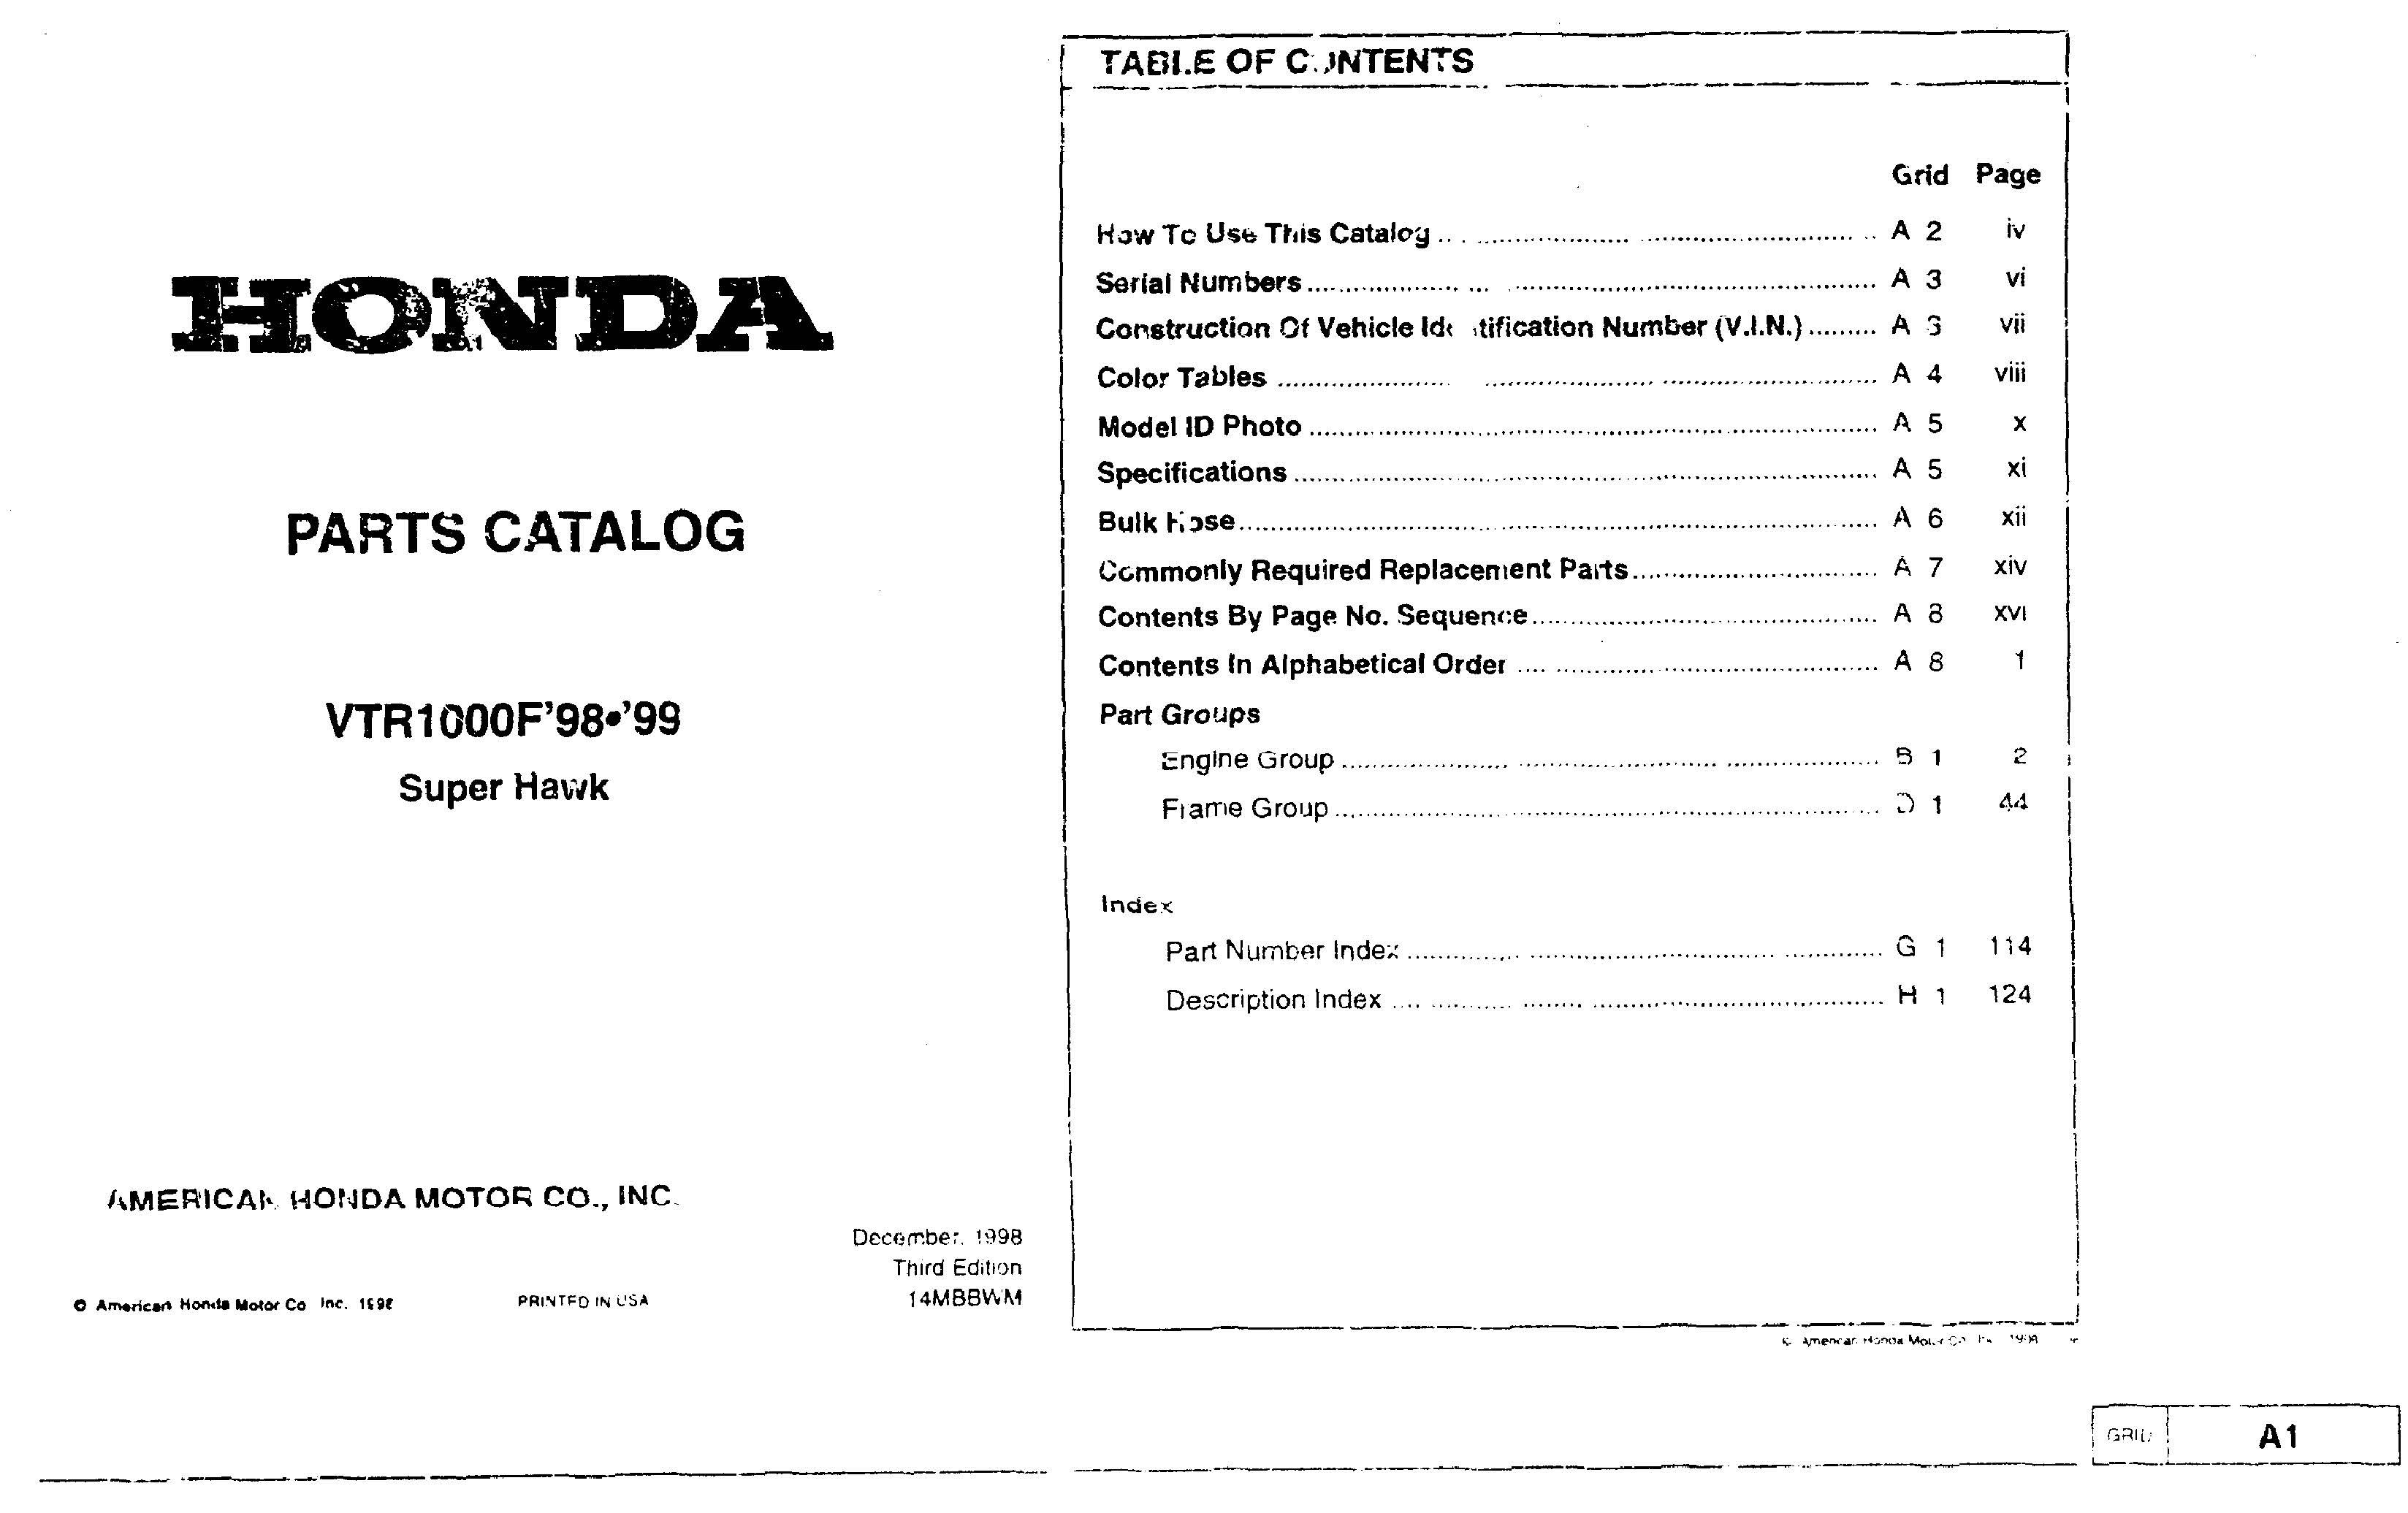 Honda Motorcycle Parts Pdf C65m Clymer Electrical Wiring Diagram List For Vtr1000f 1998 1999 4 Stroke Net All The